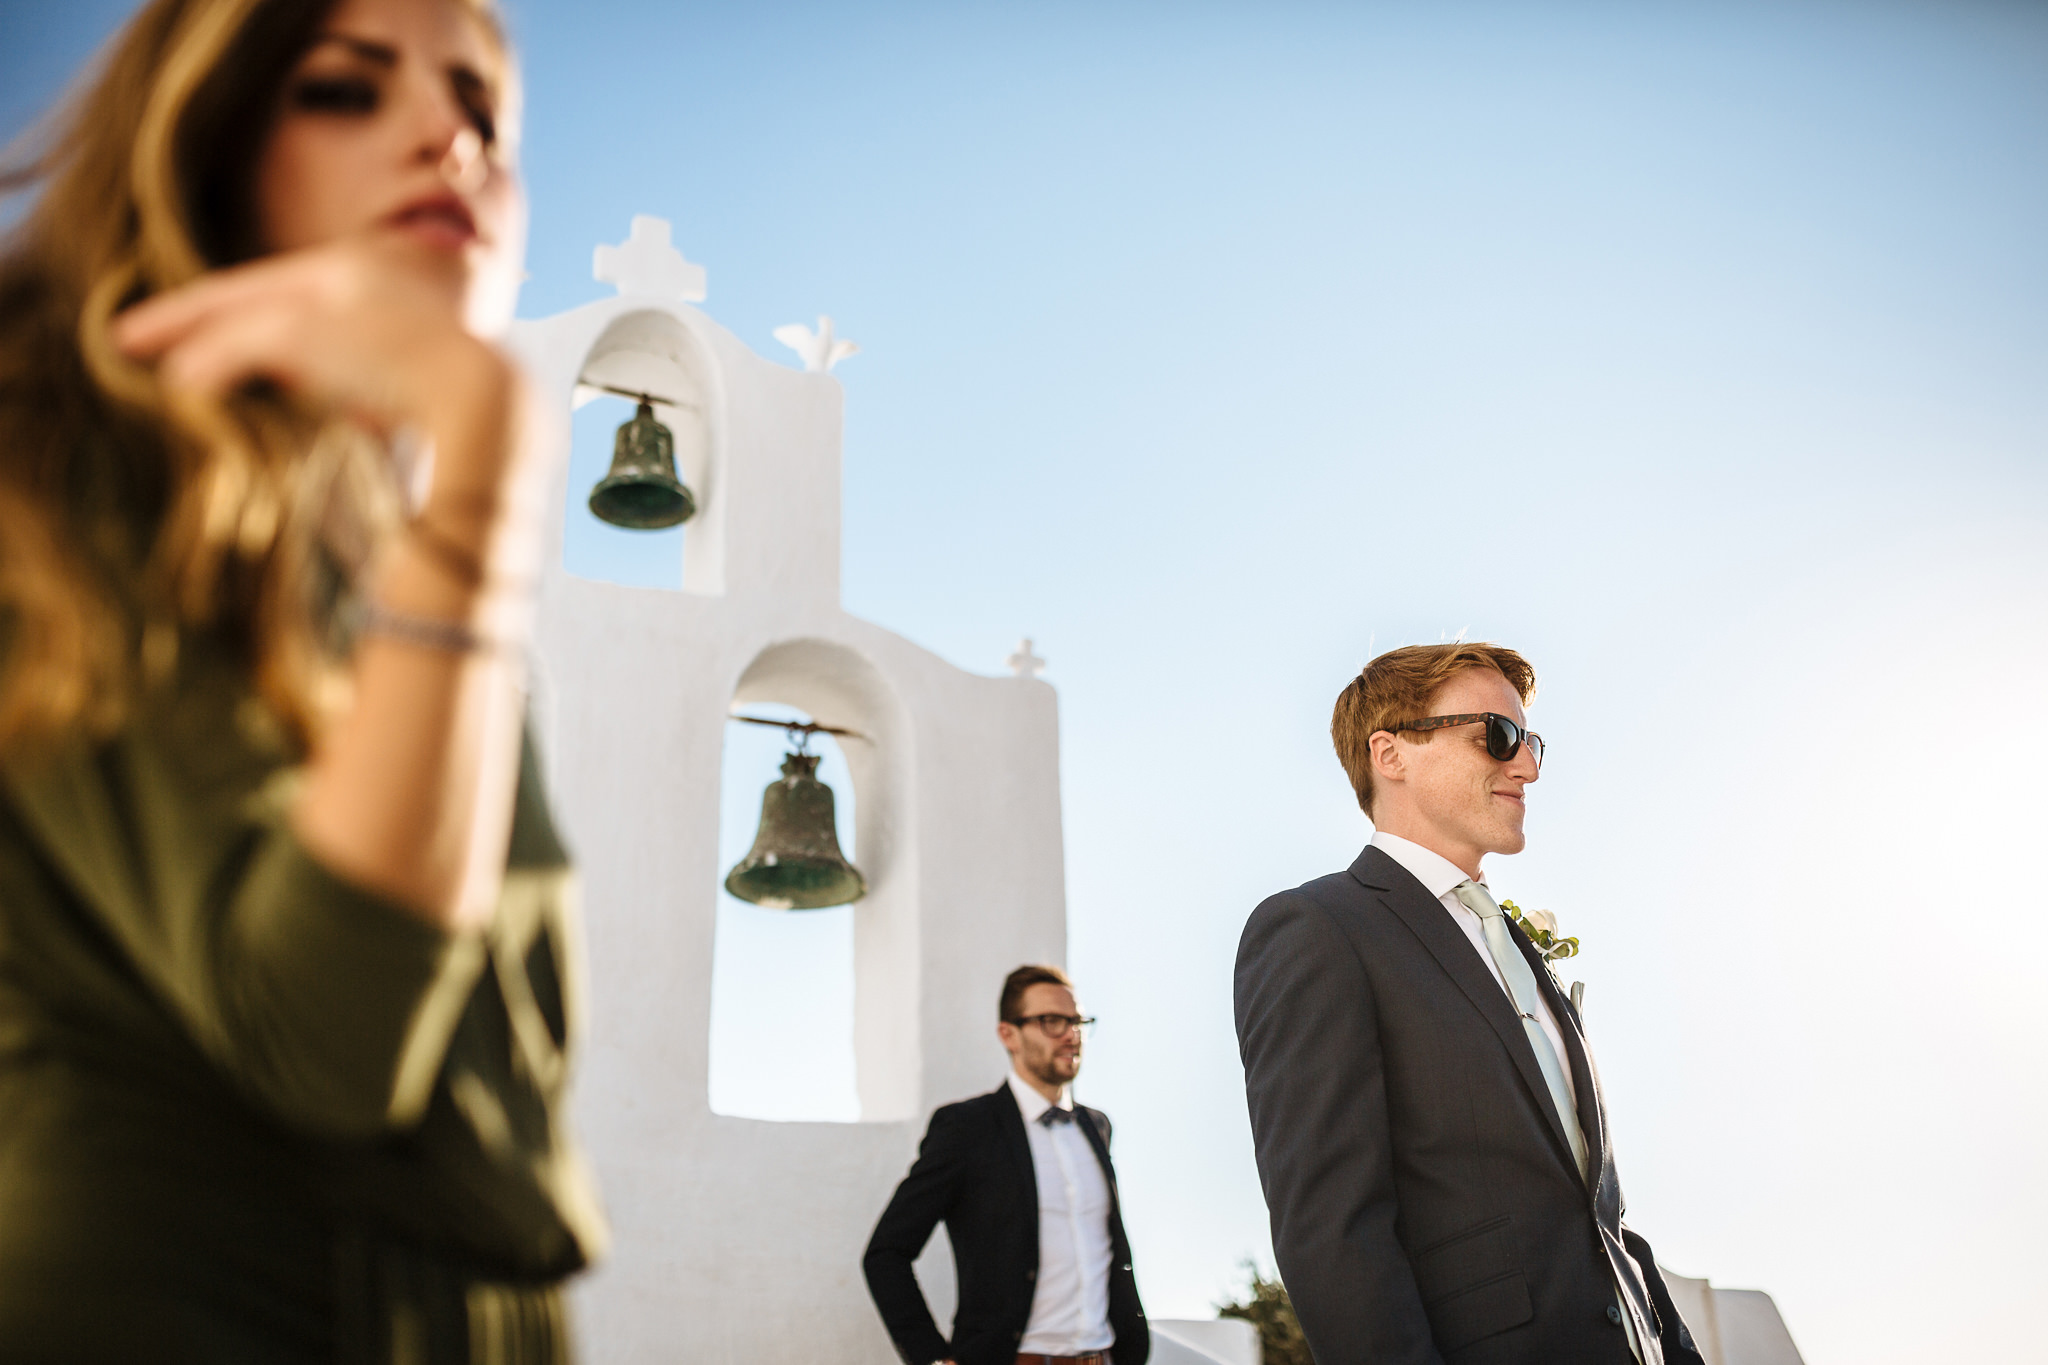 santorini-wedding-photographer-destination-90036